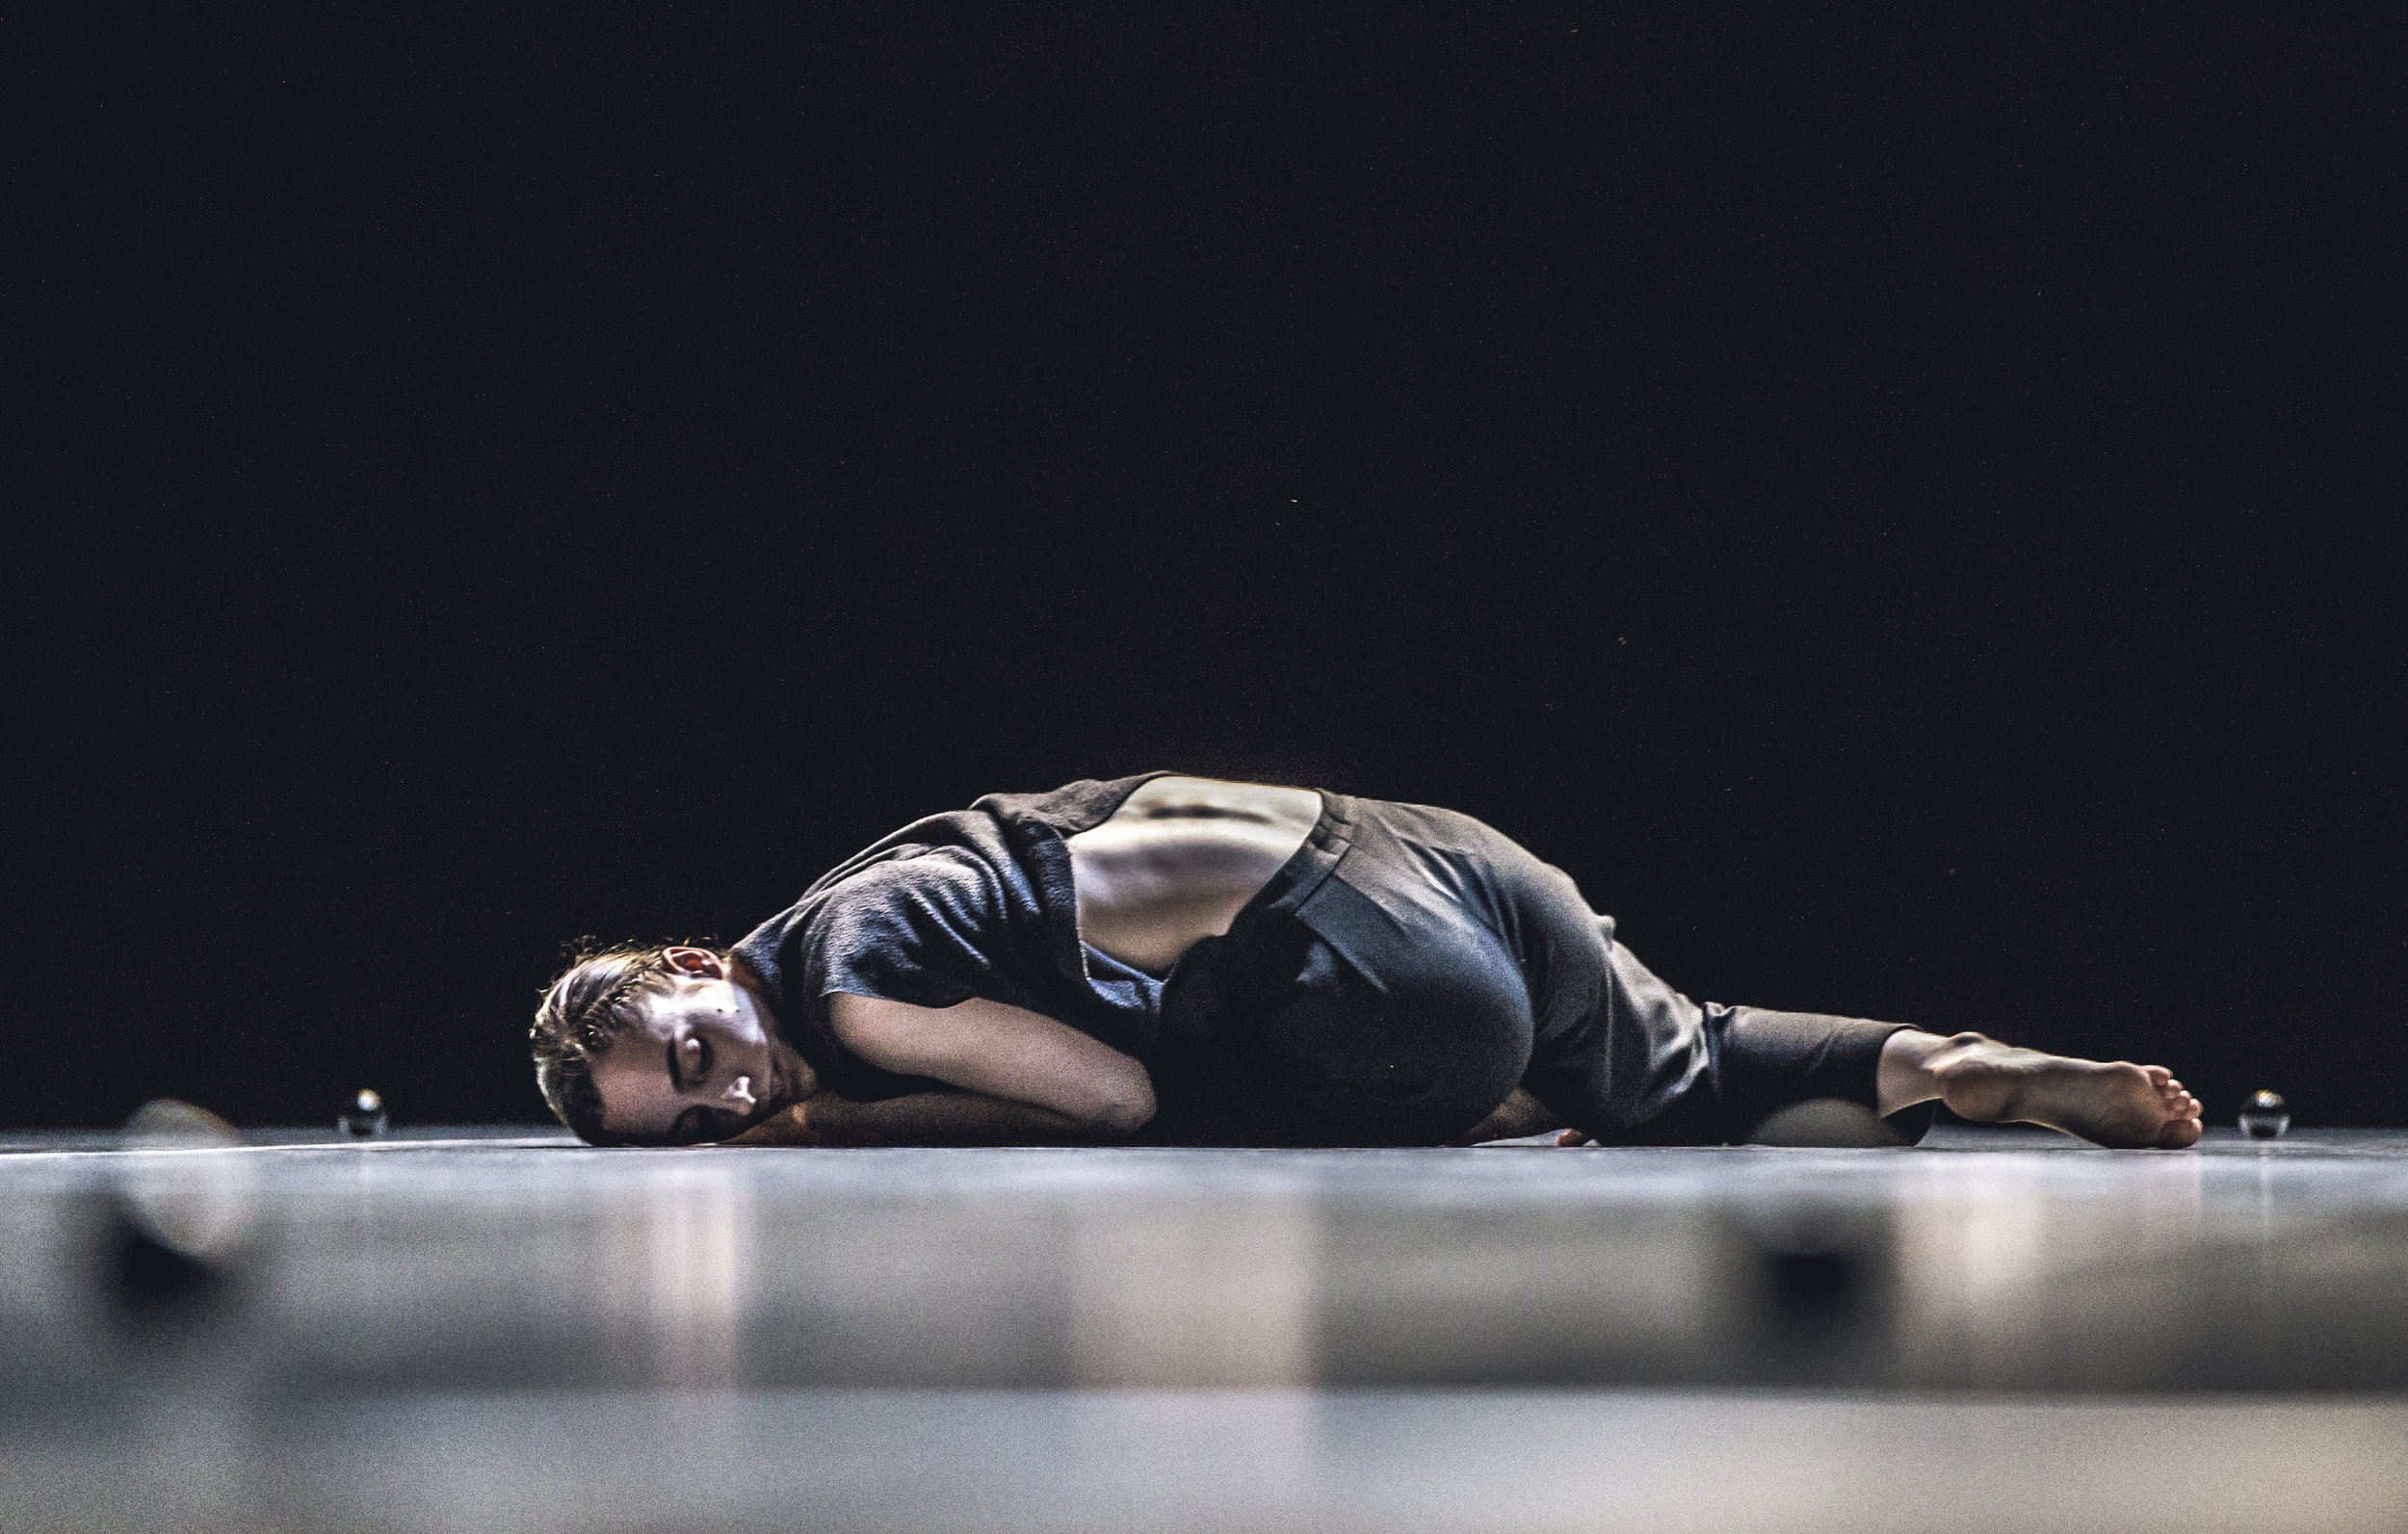 Inés Belda Nácher in Exhausting Space at Brave Festival, 2016. Photo by Mateusz Bral.